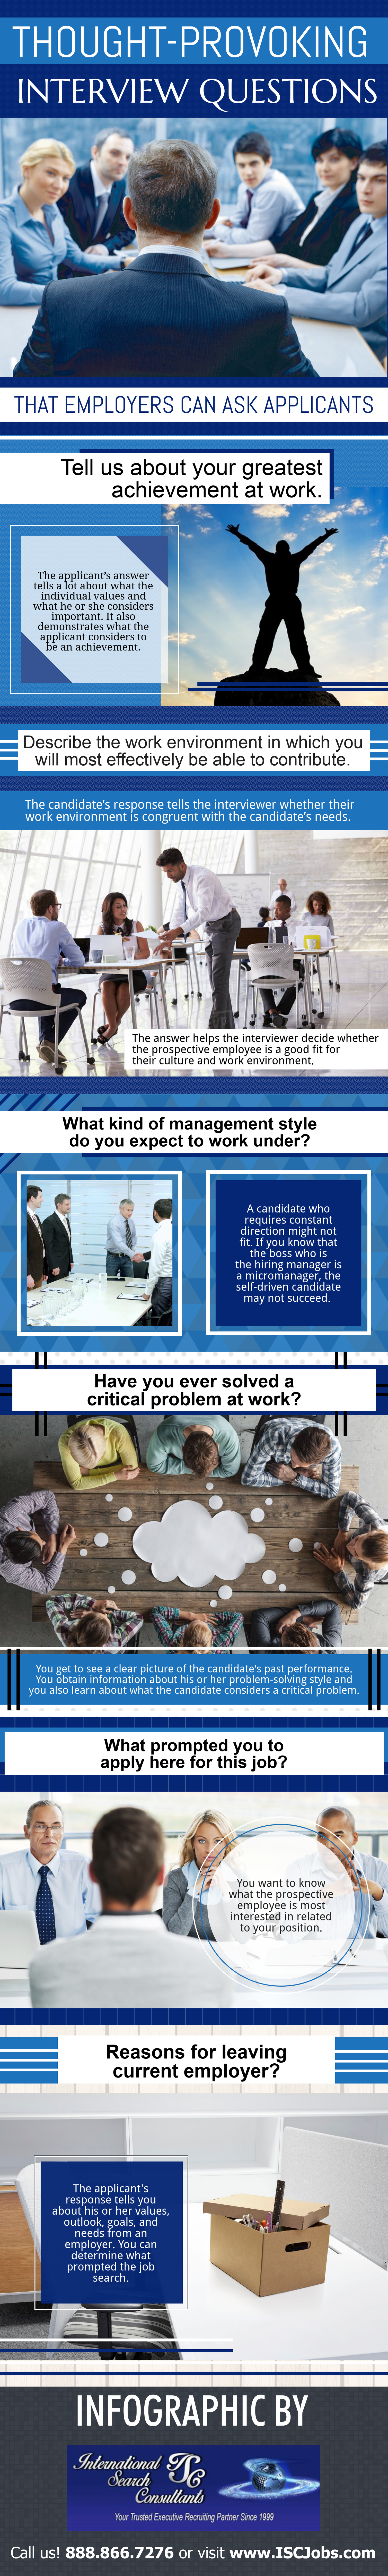 Infographic; Thought Provoking Interview Questions Guaranteed to Provide Valuable Insights